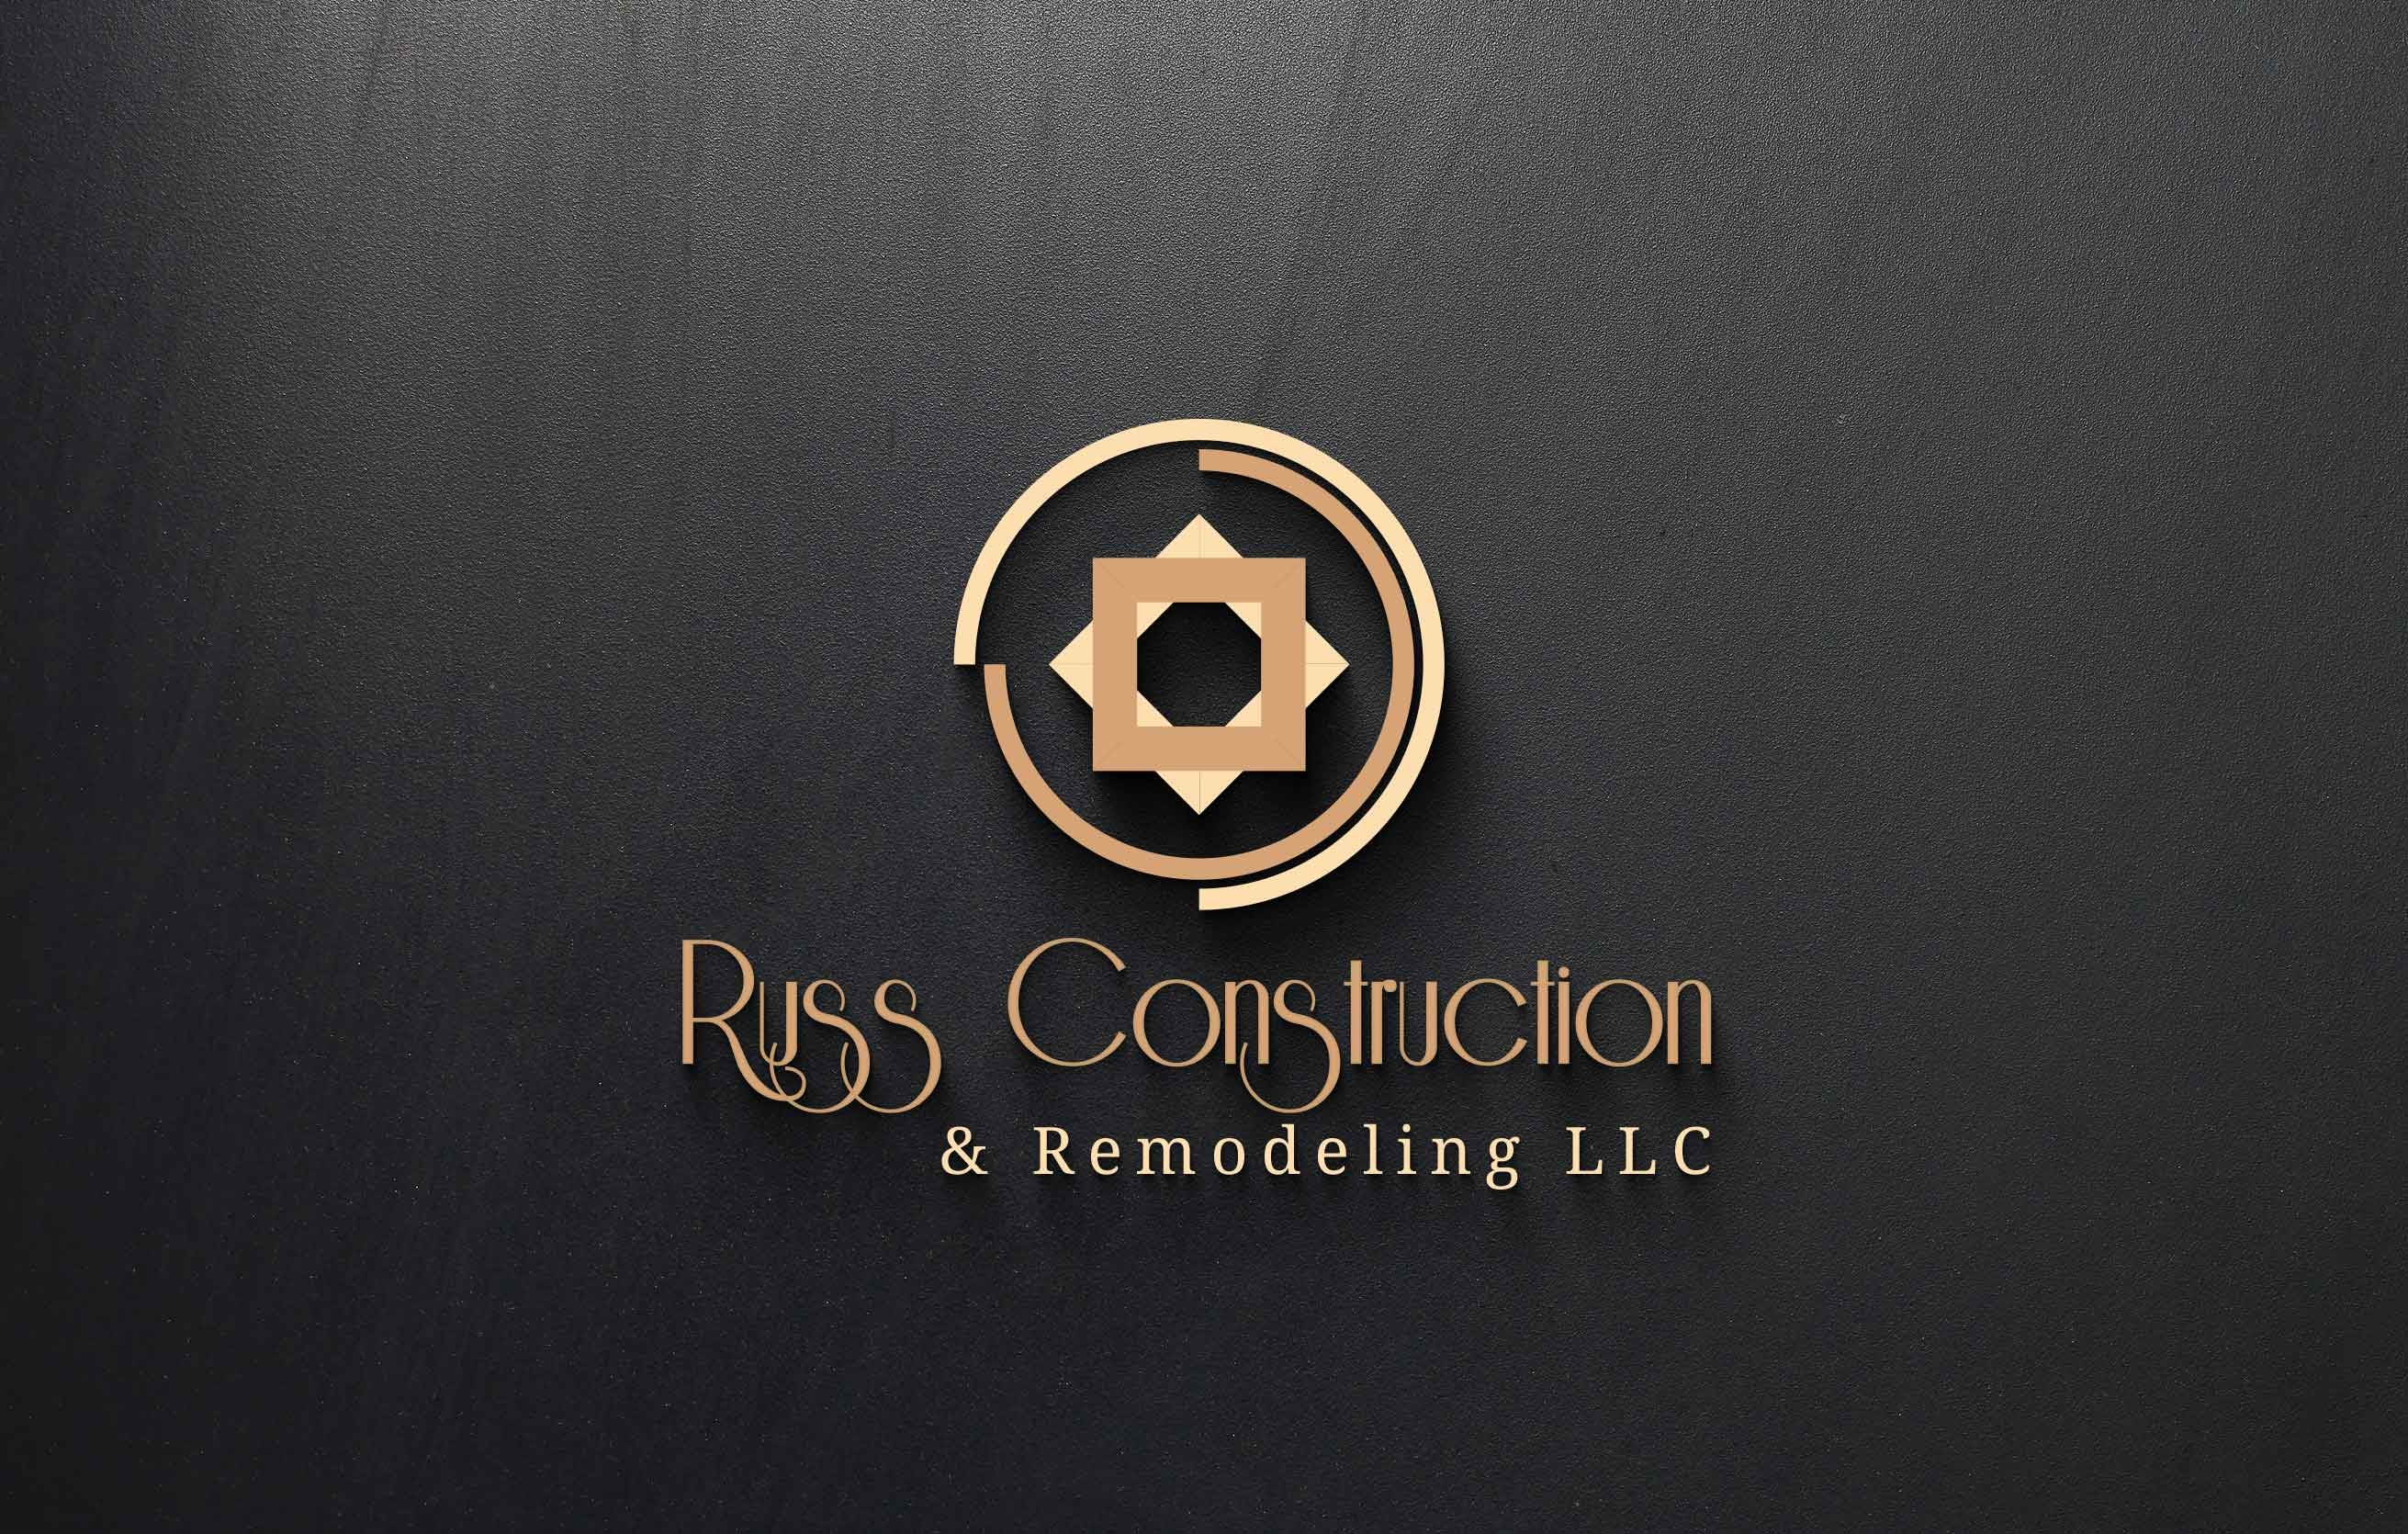 Russ Construction & Remodeling LLC image 1